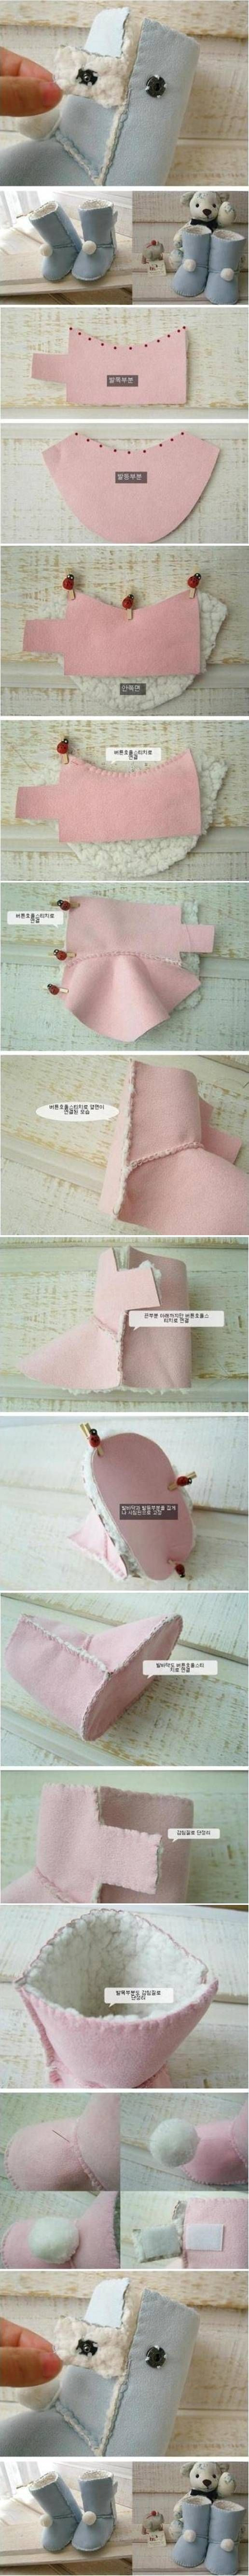 DIY Kids Ugg Boots DIY Projects | UsefulDIY.com